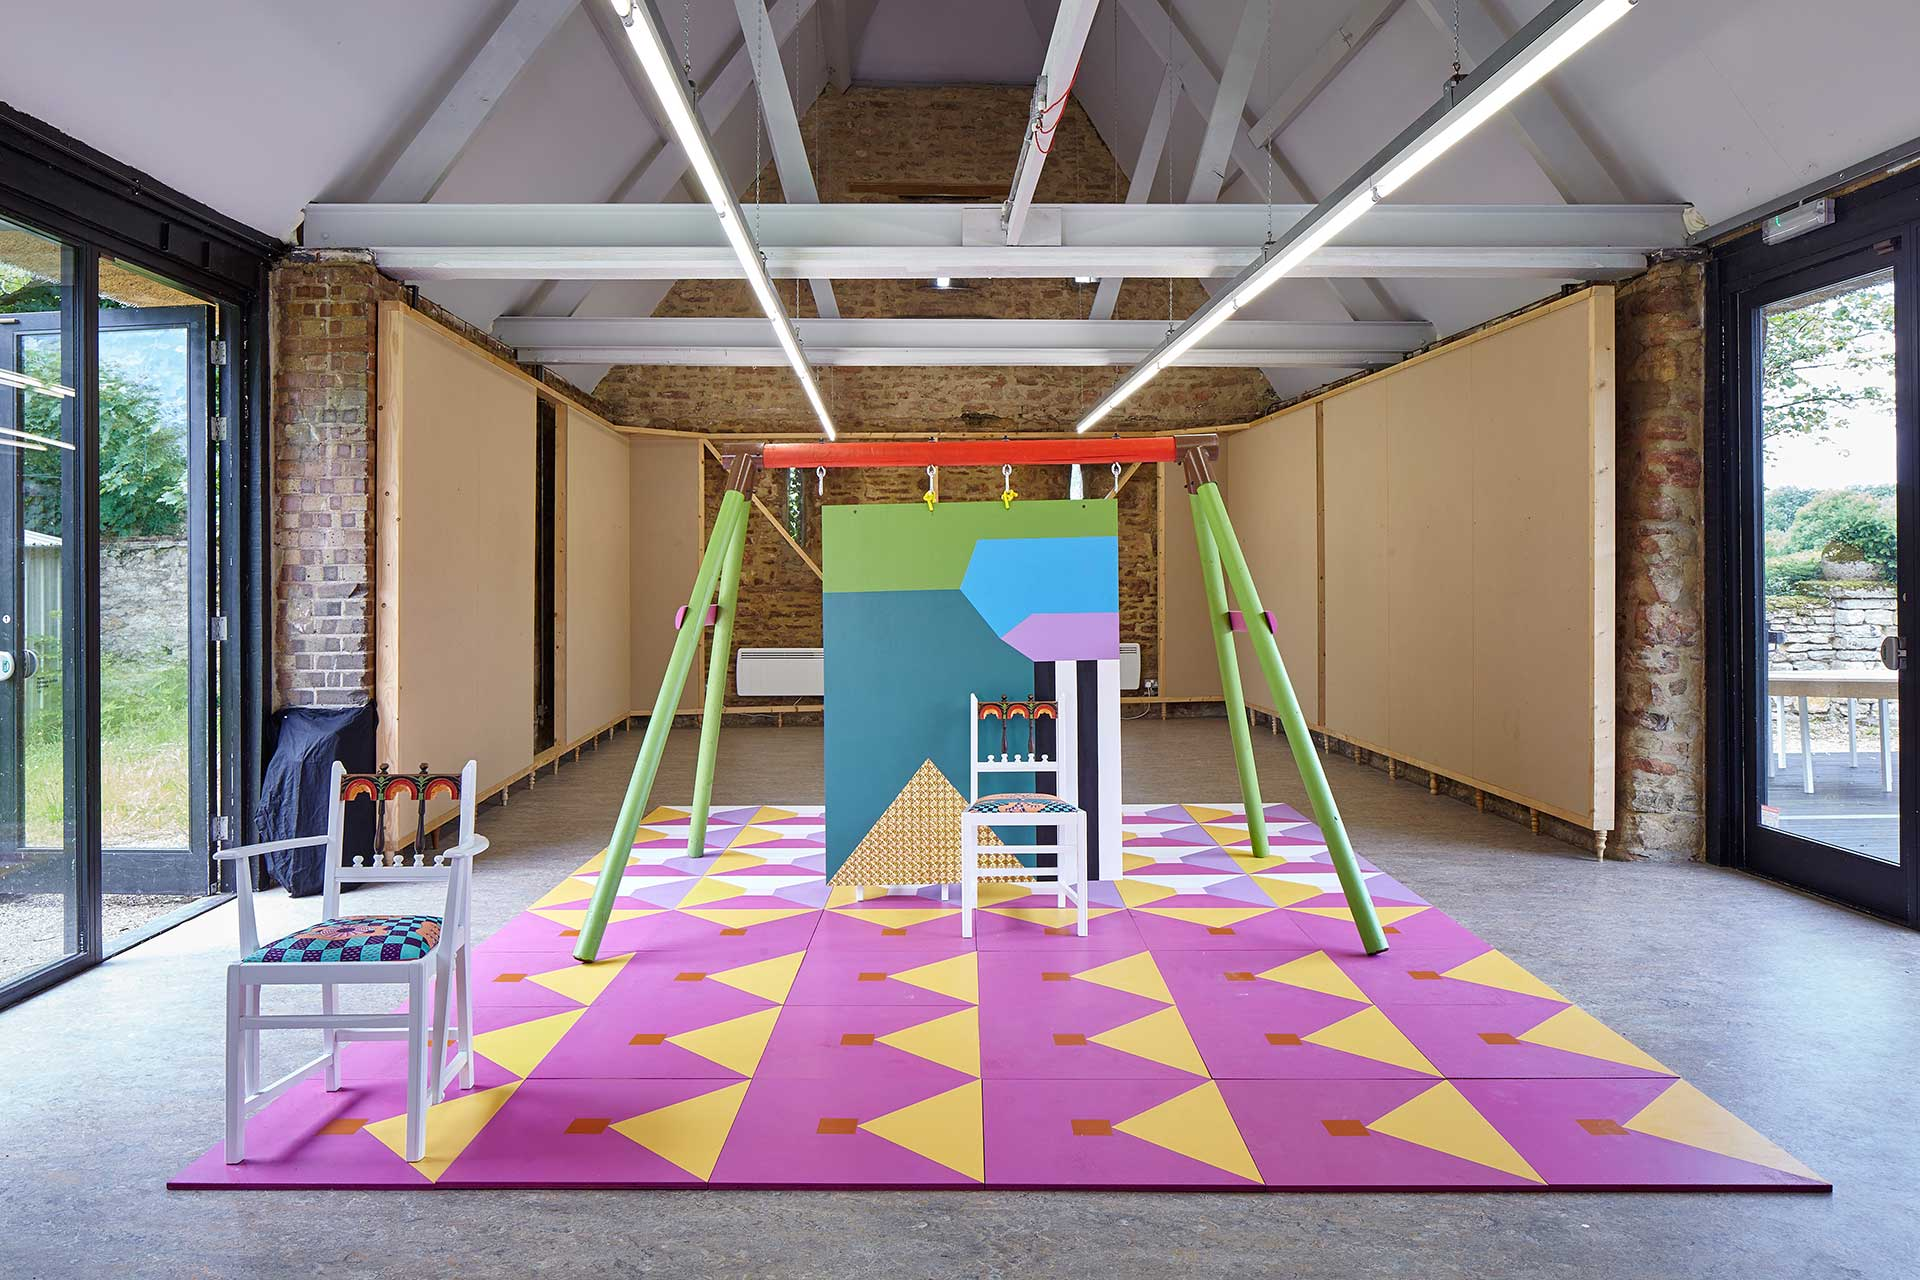 A studio space with a brightly colored rug, backdrop, and two chairs.